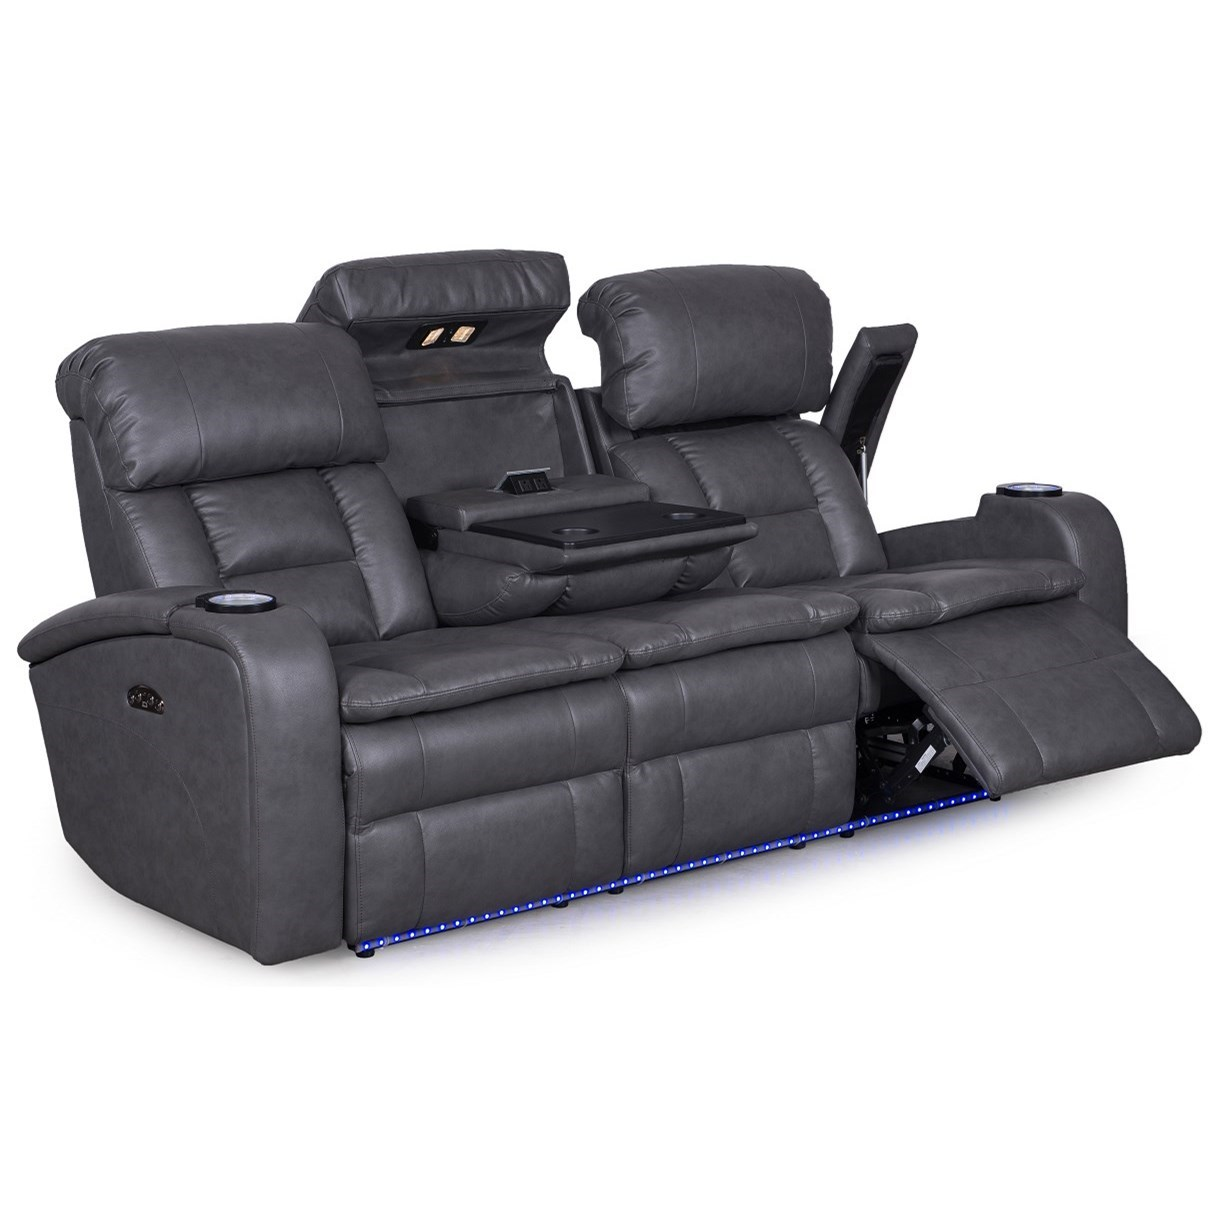 Synergy Home Furnishings 467 Reclining Sofa. Reclining Sofas   Eugene  Springfield  Albany  Coos Bay  Corvallis